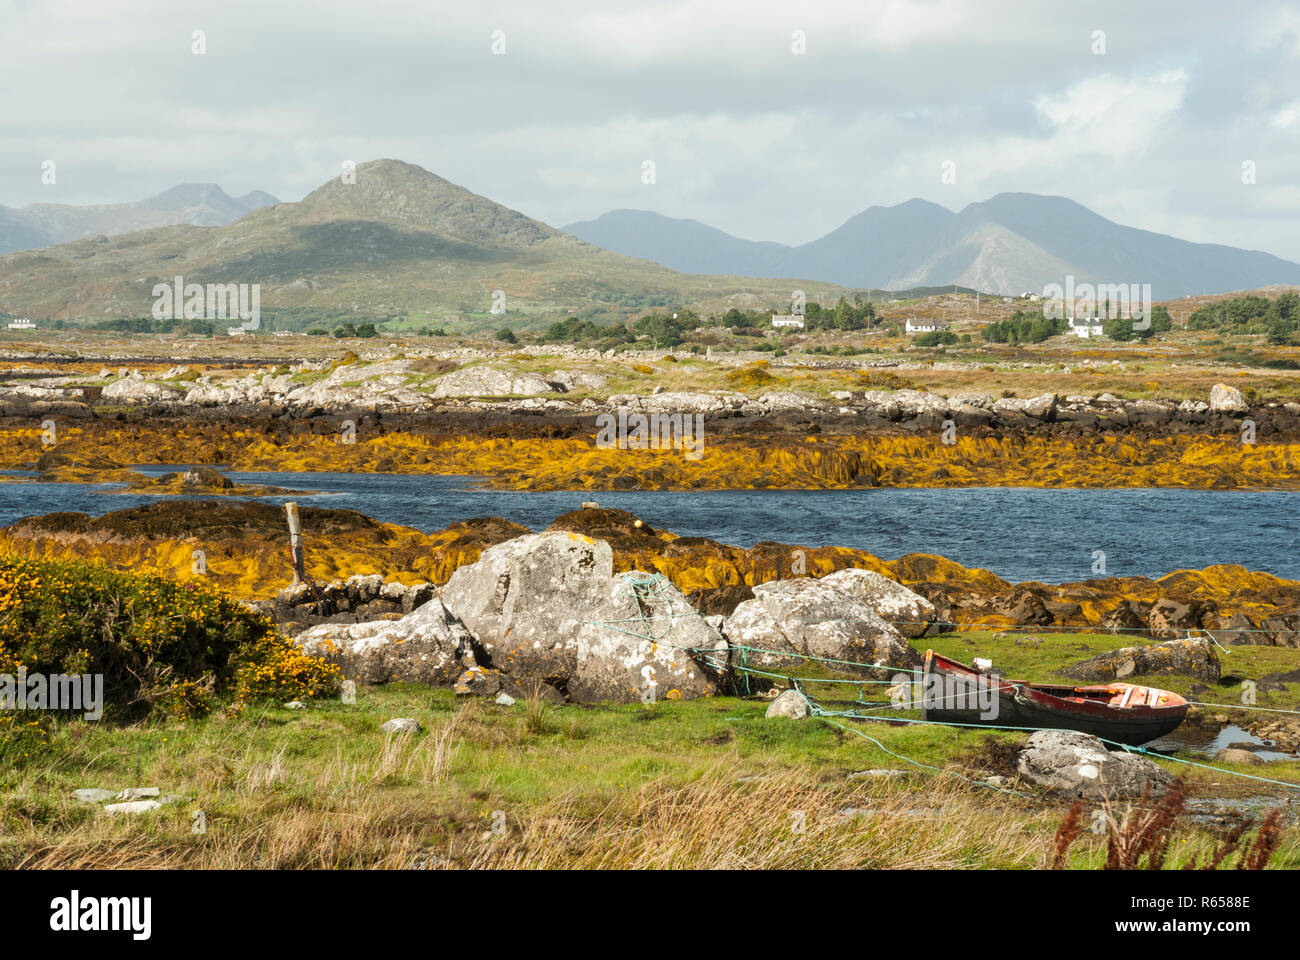 A beautiful sea inlet lined with orange seaweed; in the background the Beanna Beola mountain range of the Connemara National Park, Ireland in sunshine. - Stock Image